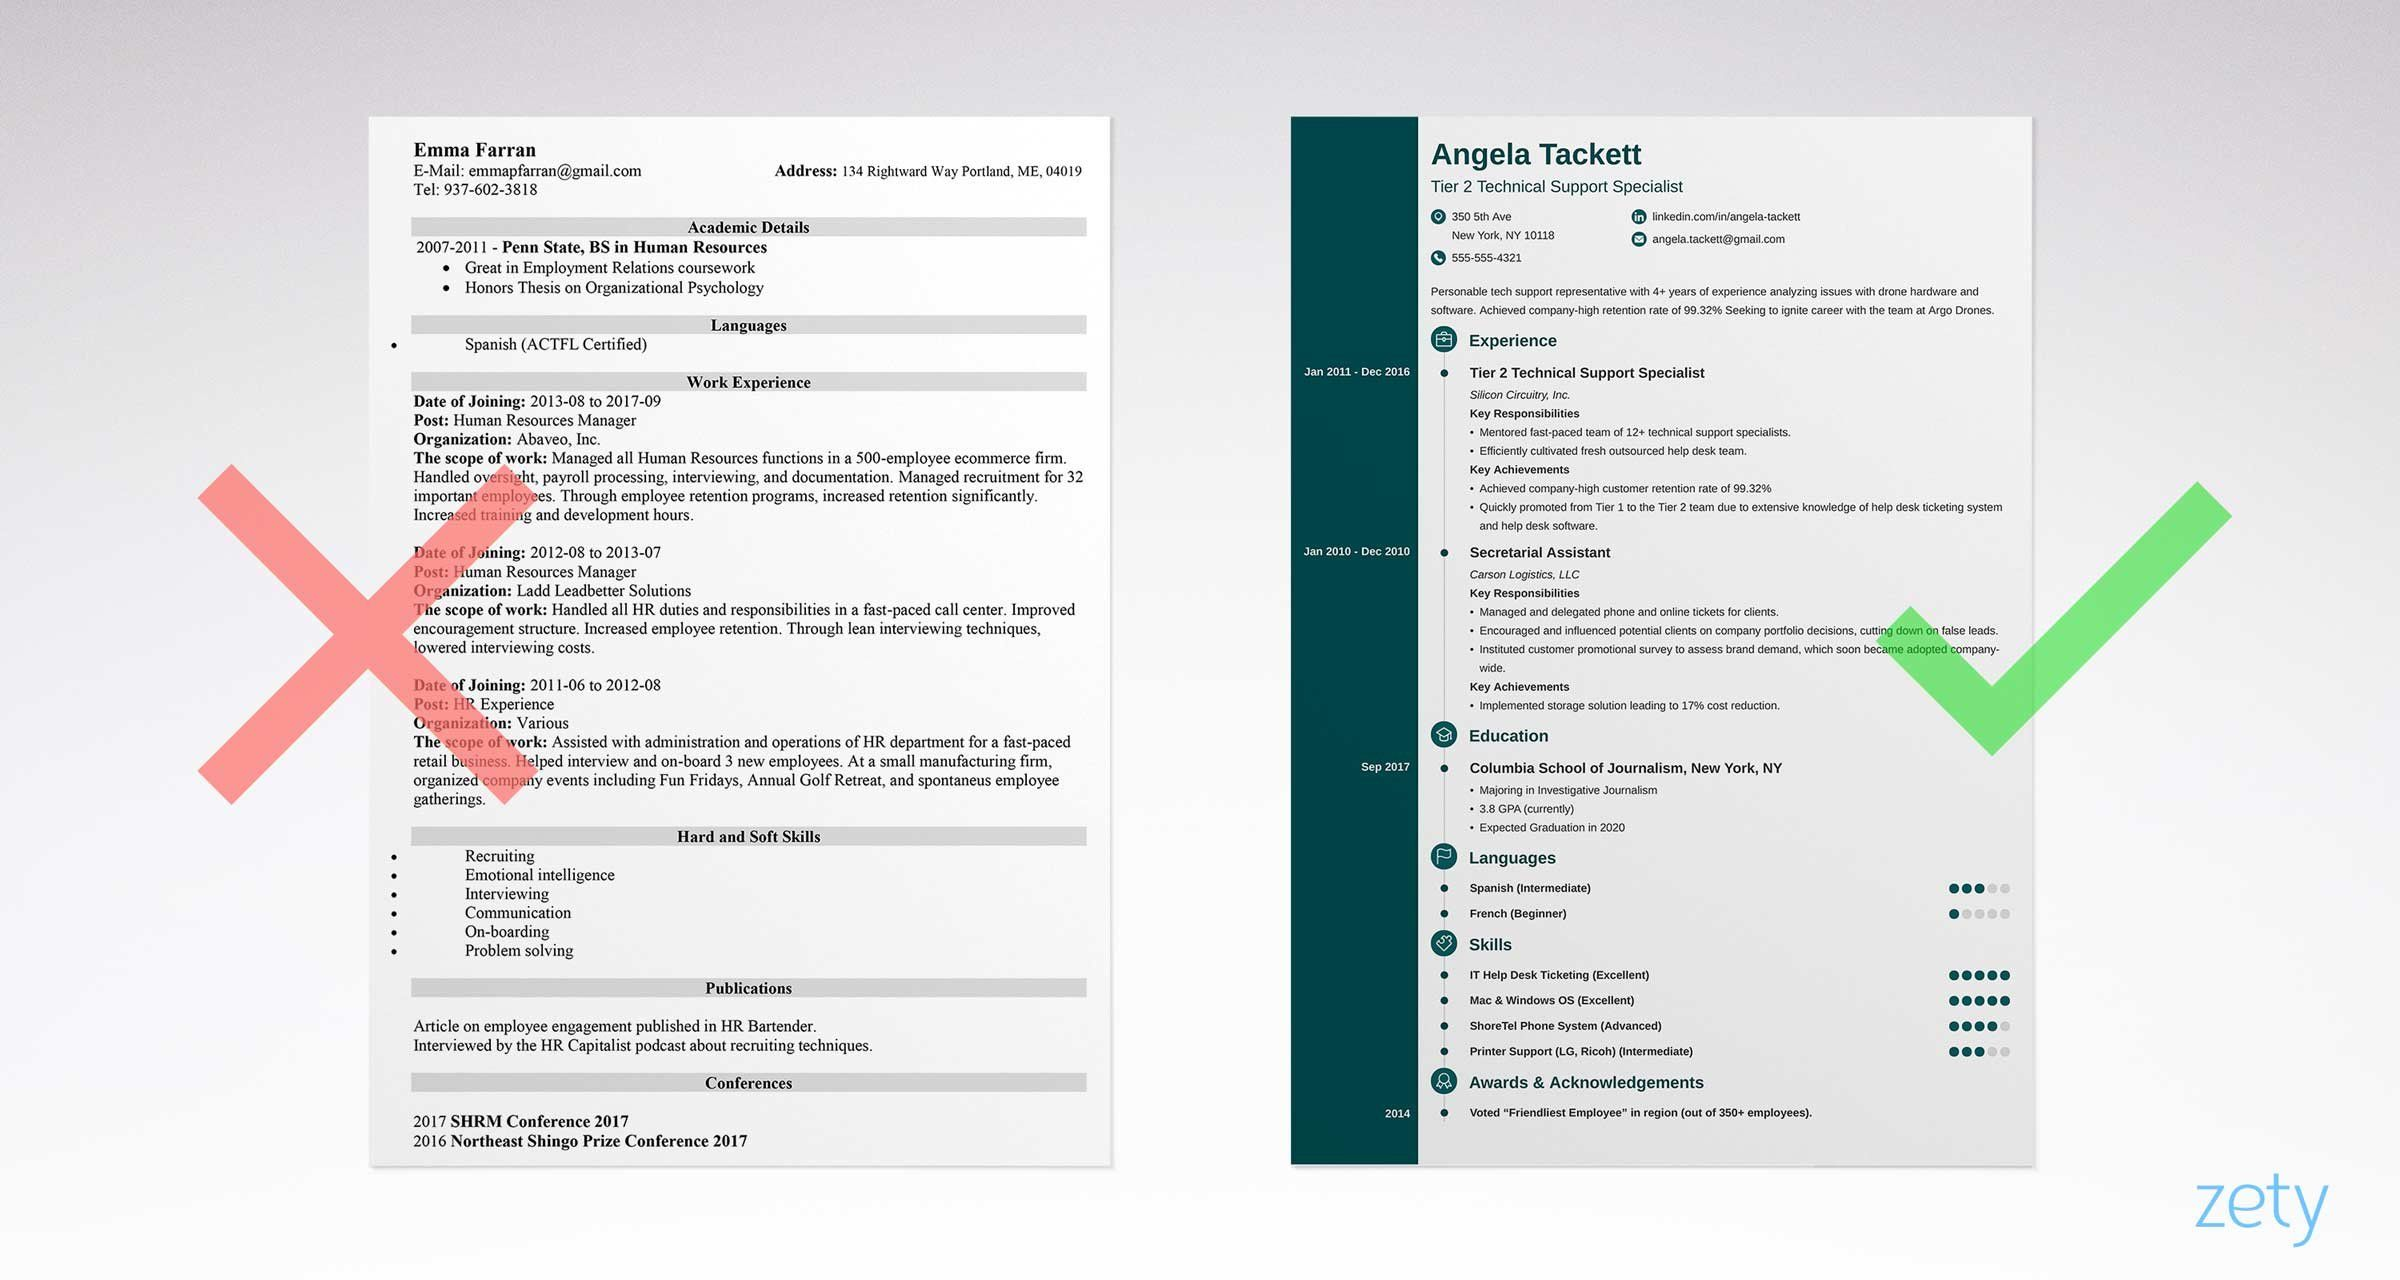 Cv Template Zety Simple Resume Template Simple Resume Format